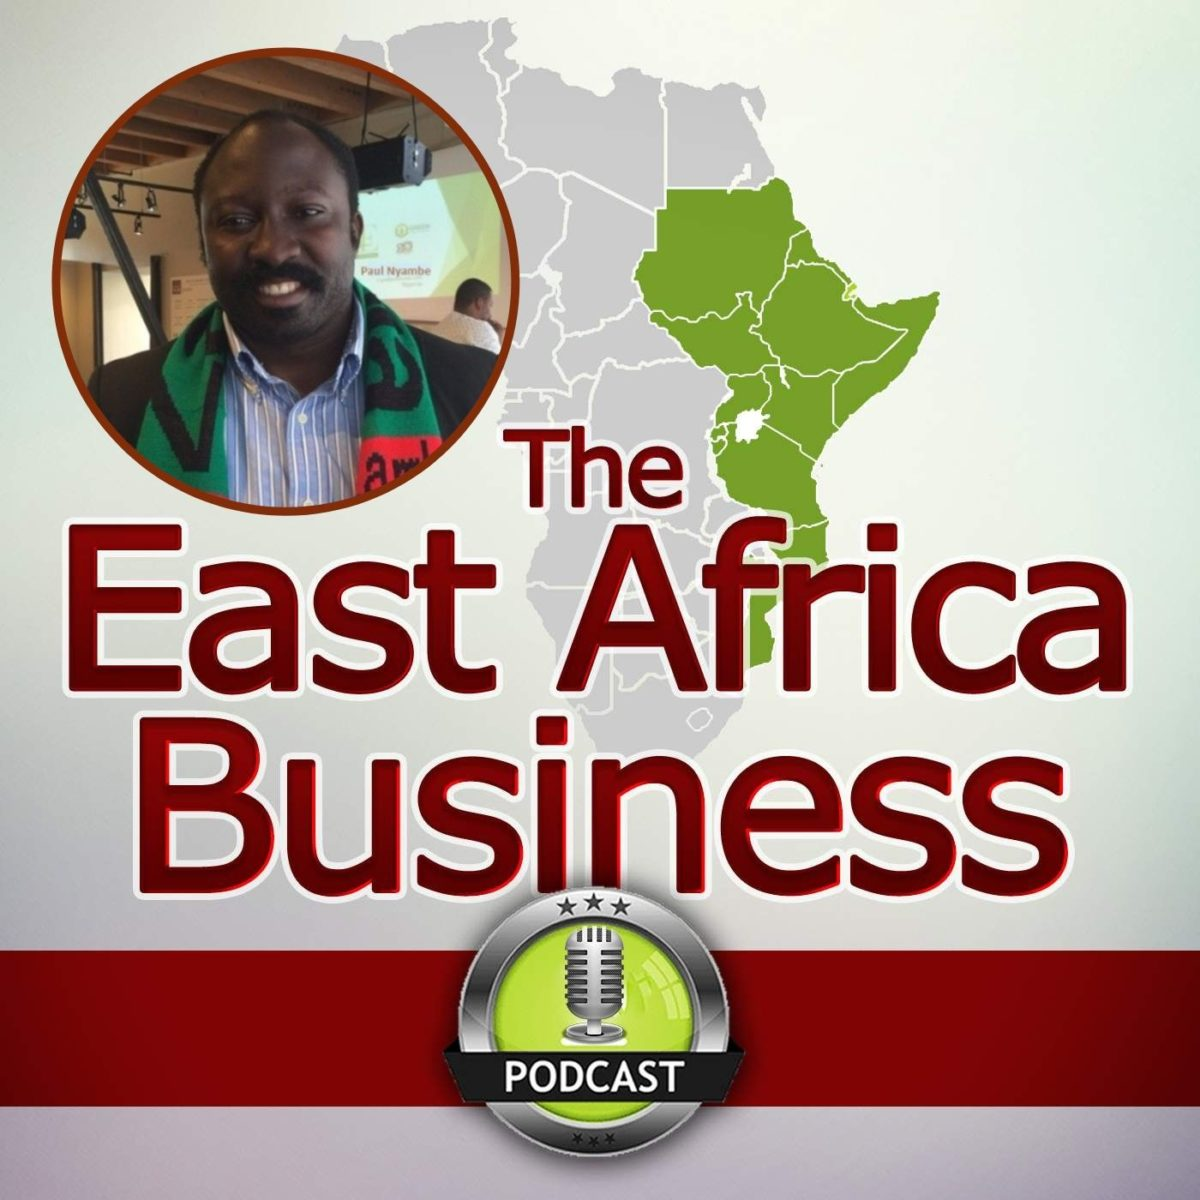 Why Zamgoat believes goats are the next big meat in Zambia (and the world), with Paul Nyambe